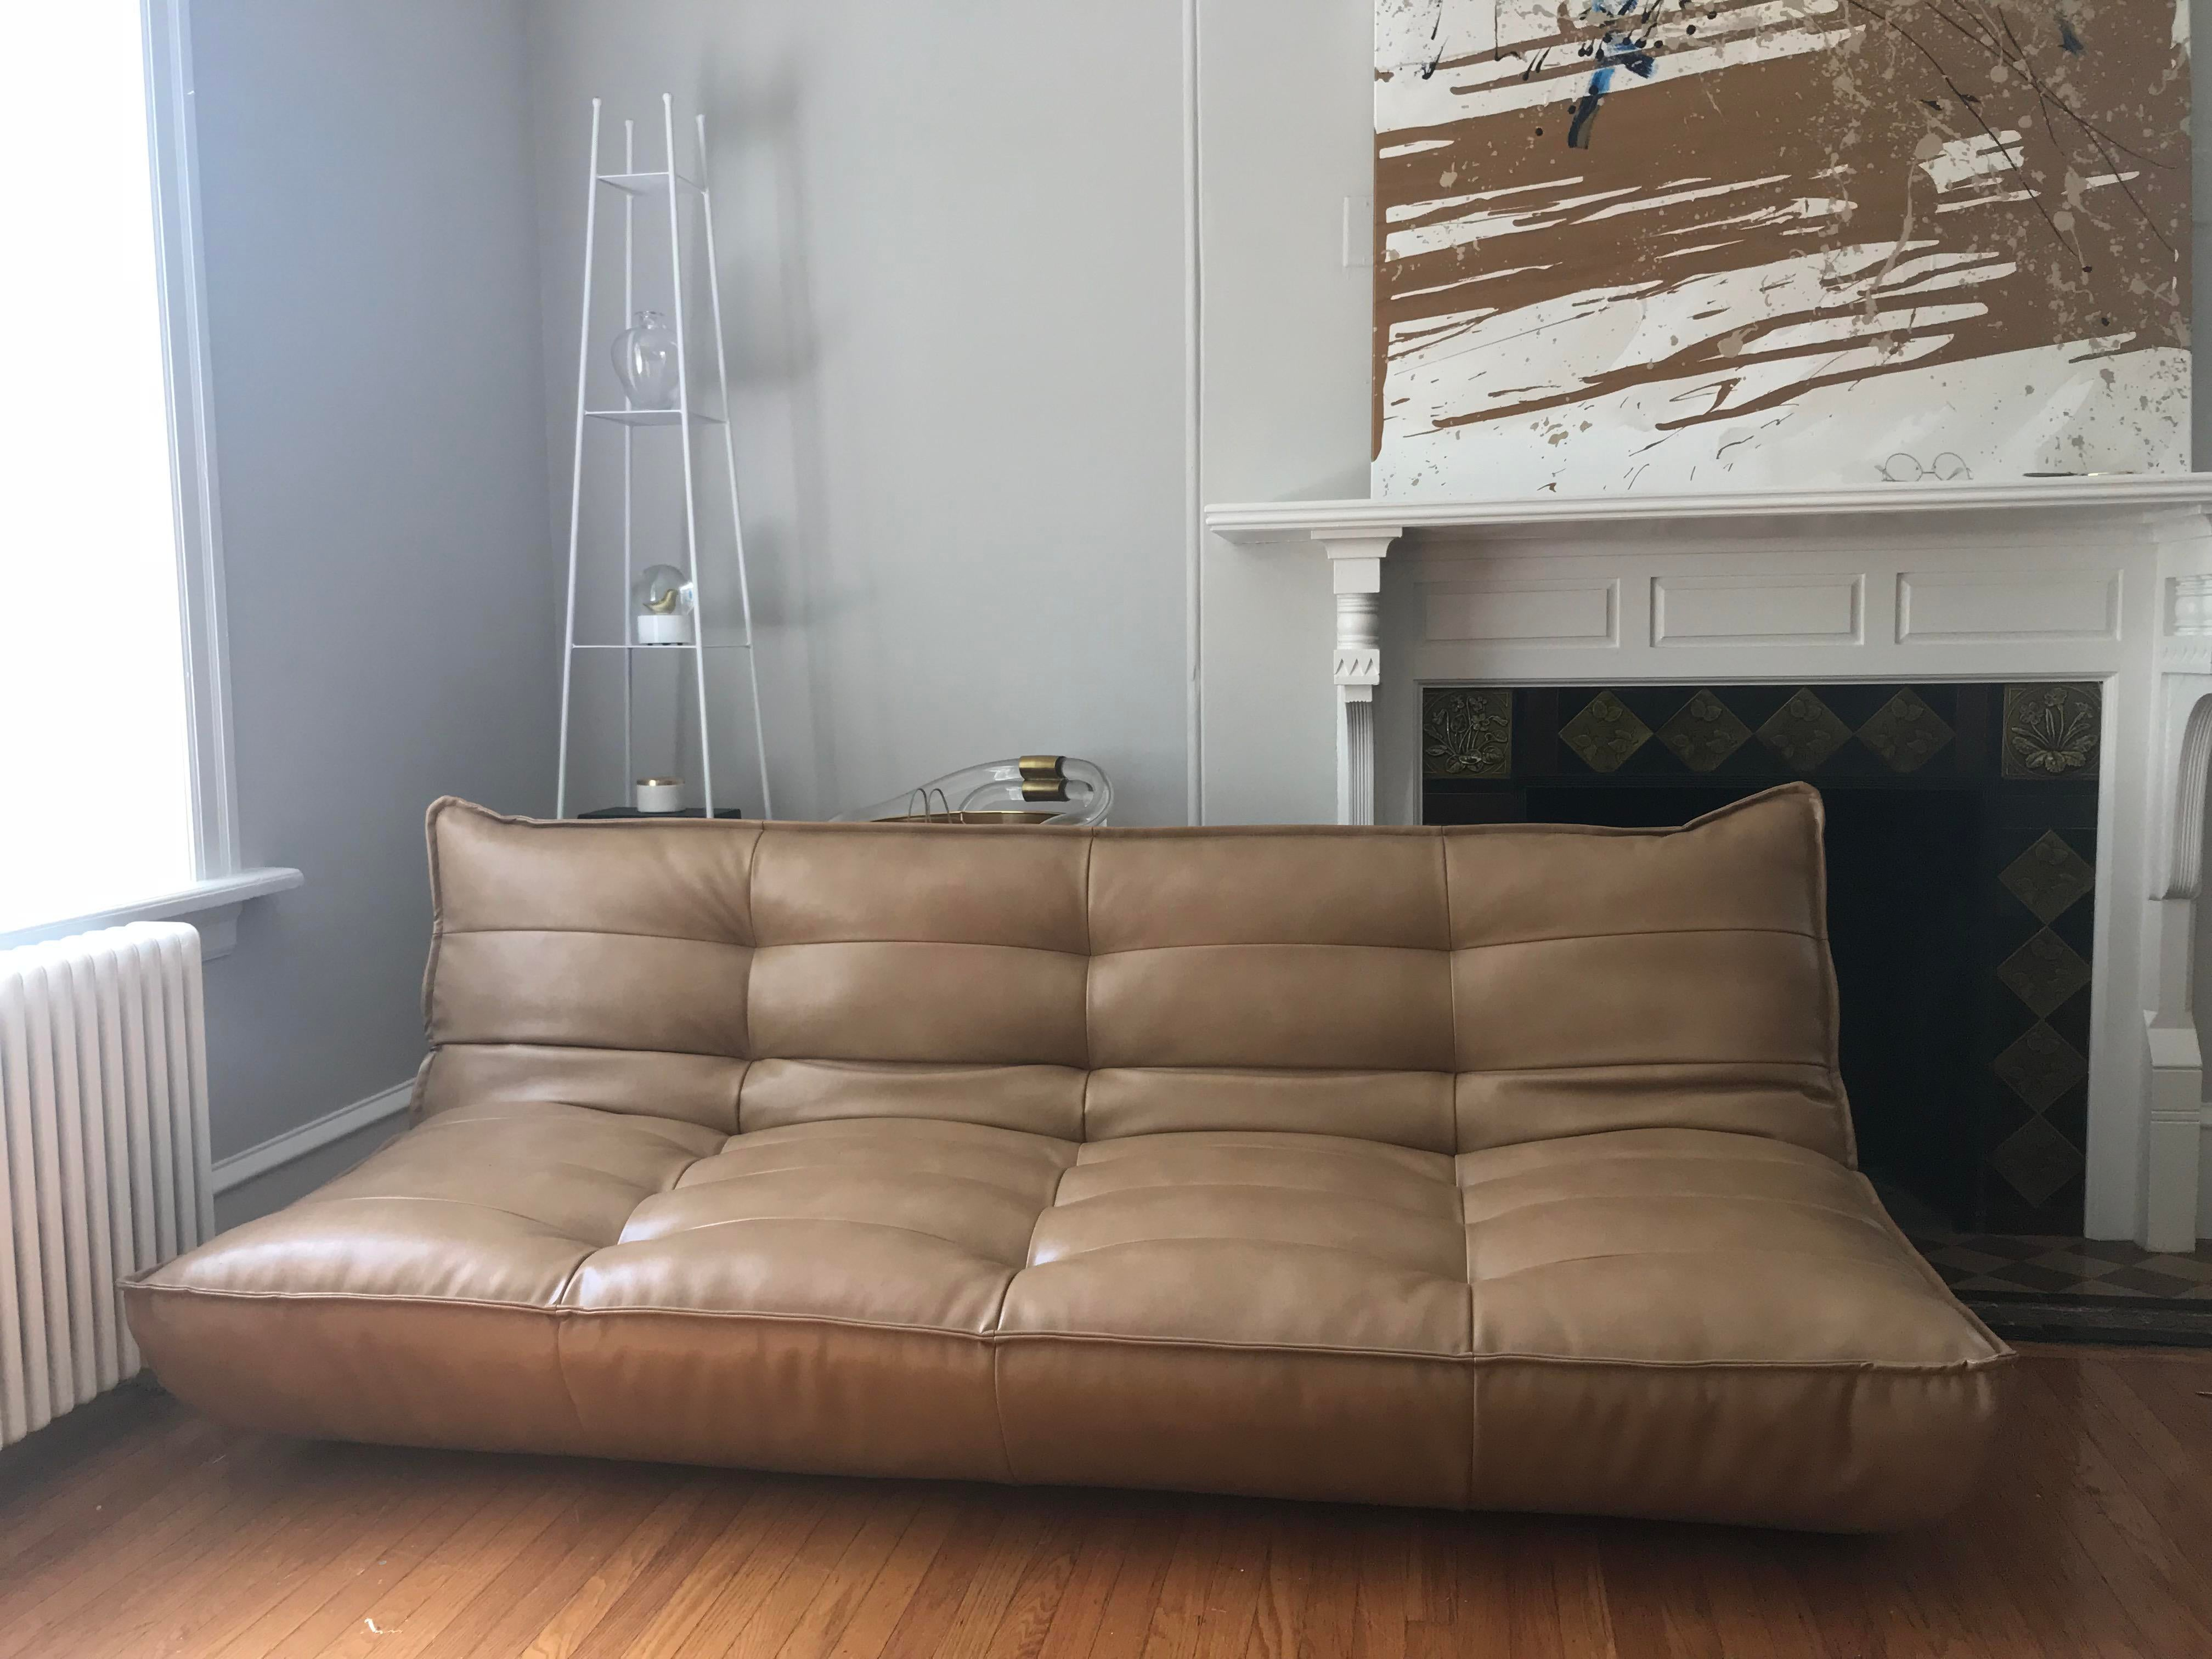 Recycled Xl Leather Sleeper Sofa From Urban Outfitters. Brand New. Retails  For $879